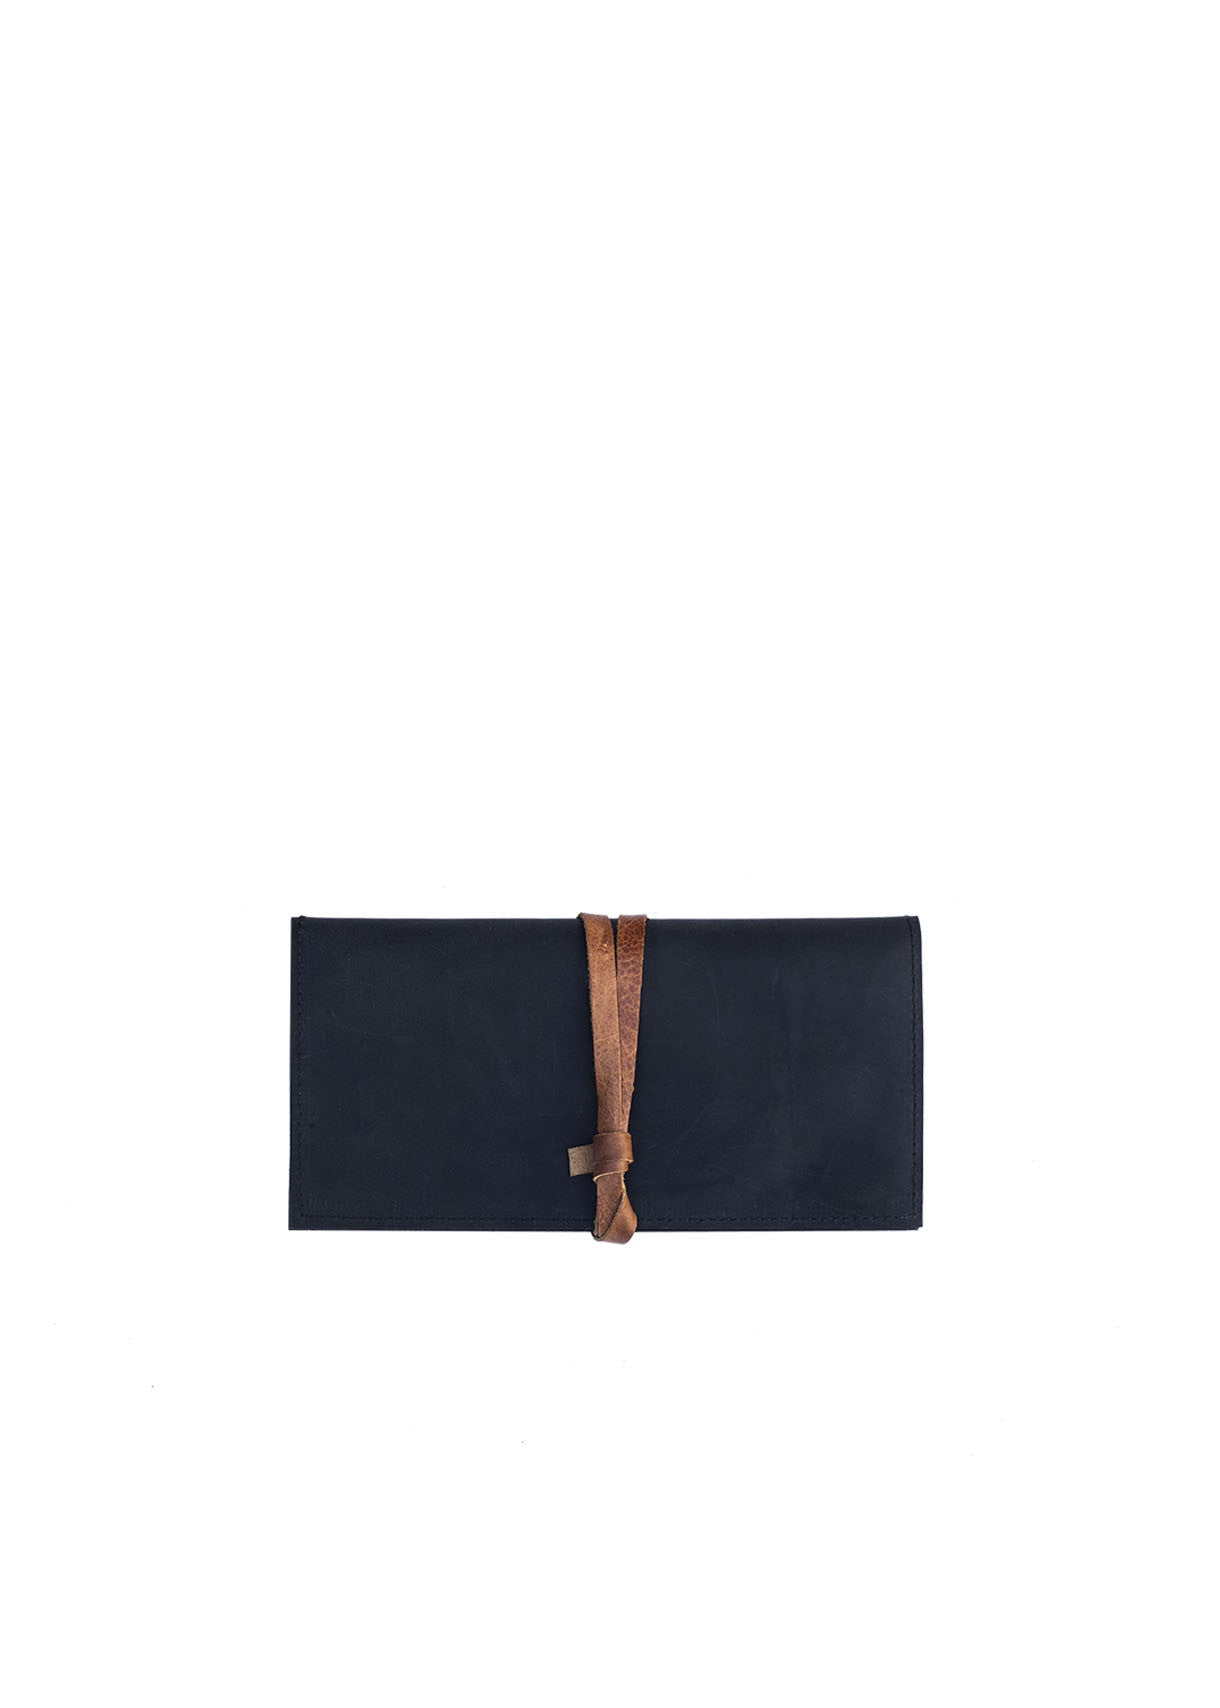 The Shema  Wallet - Black and Honey - Rais Case - Image 2